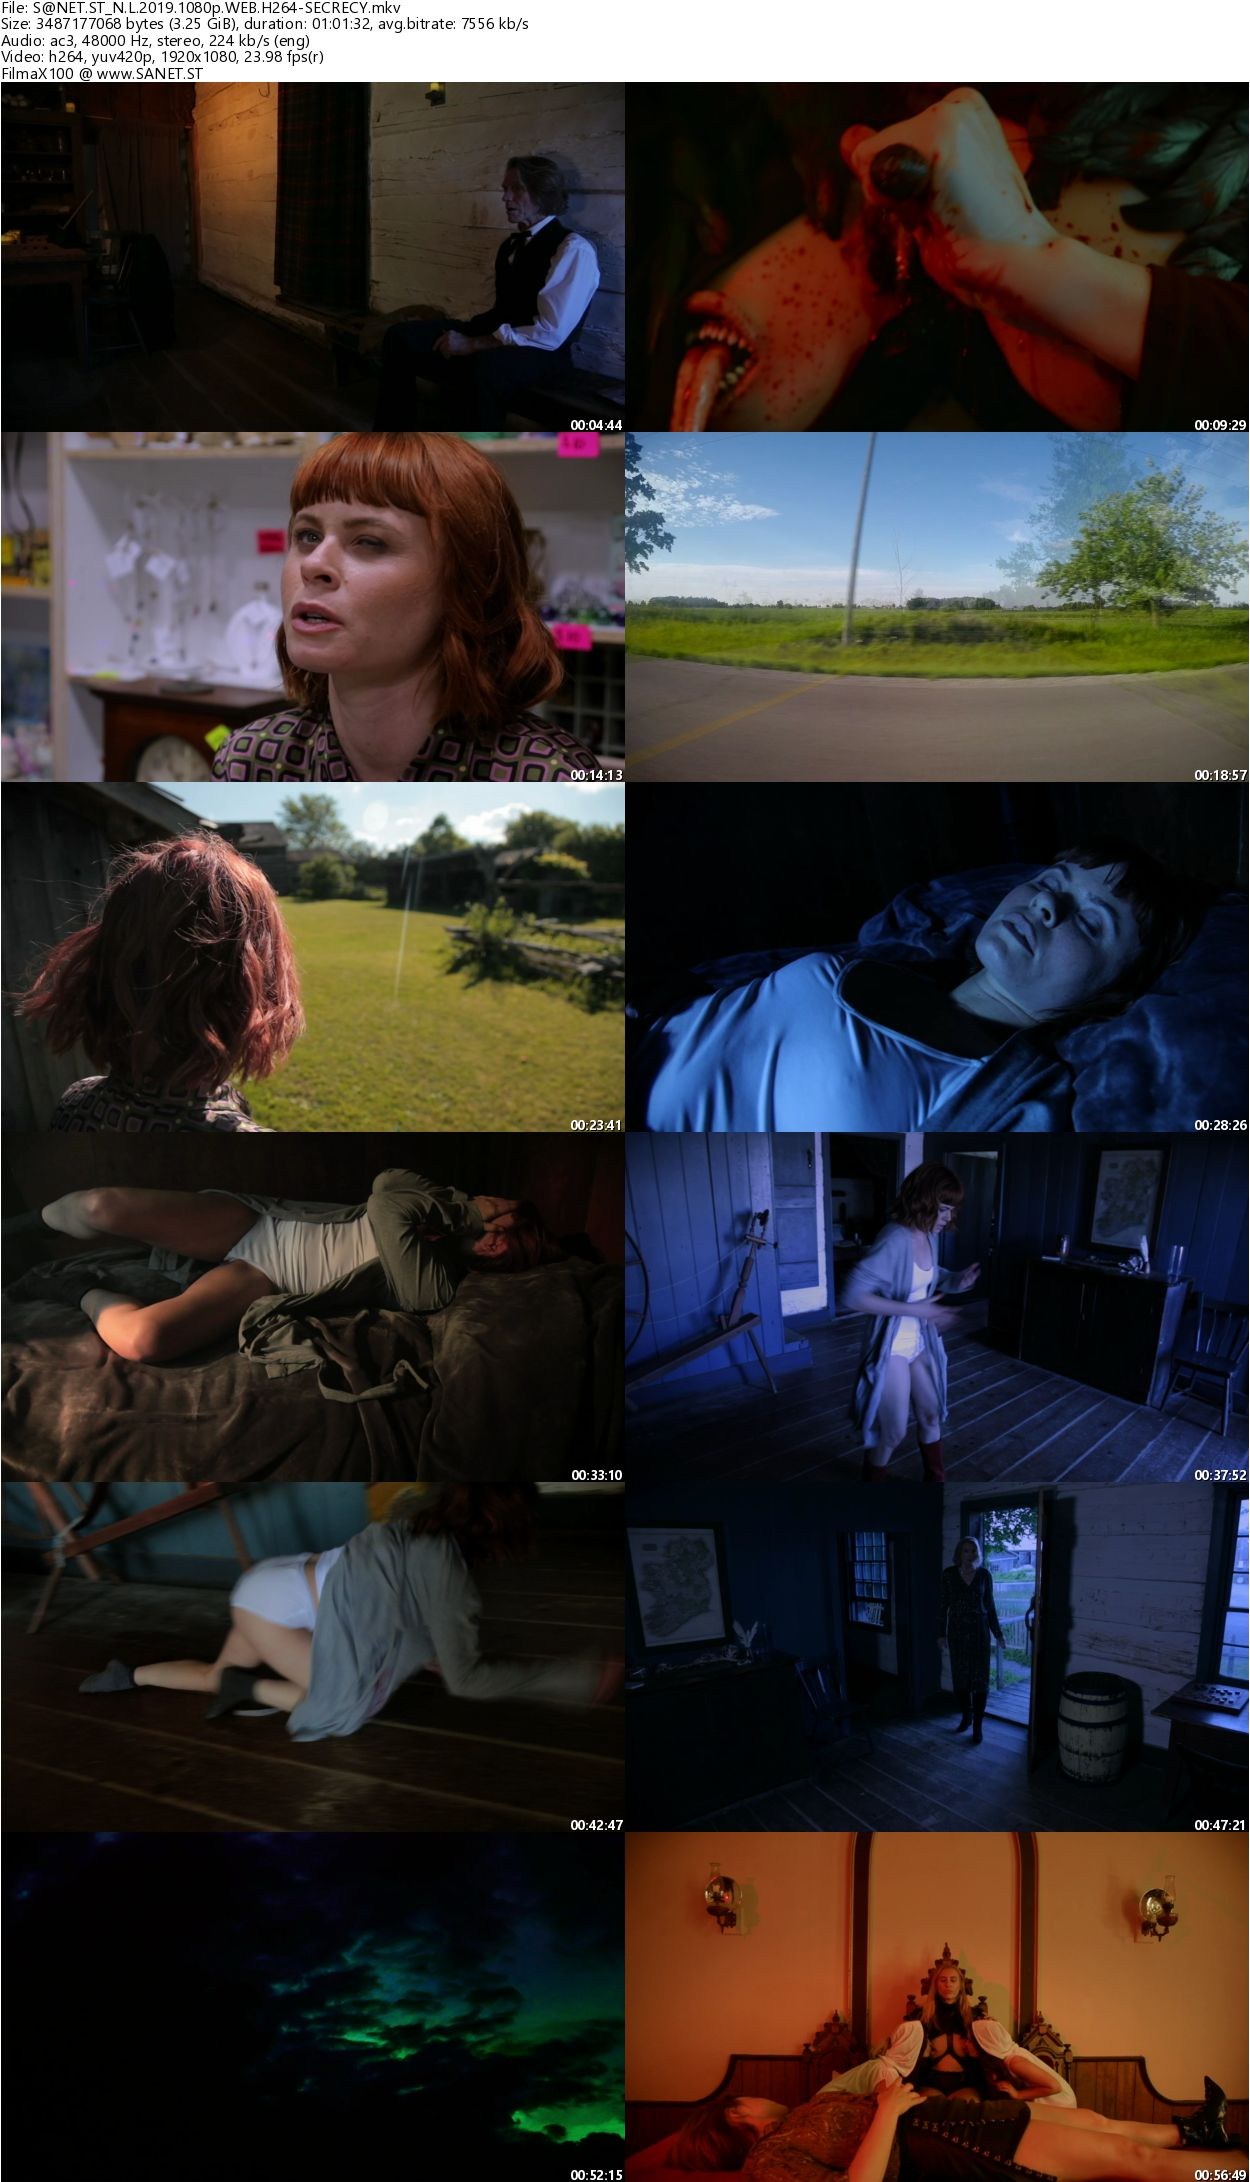 A collection of stills from Necropolis: Legion, highlighting the rich use of color in the film.